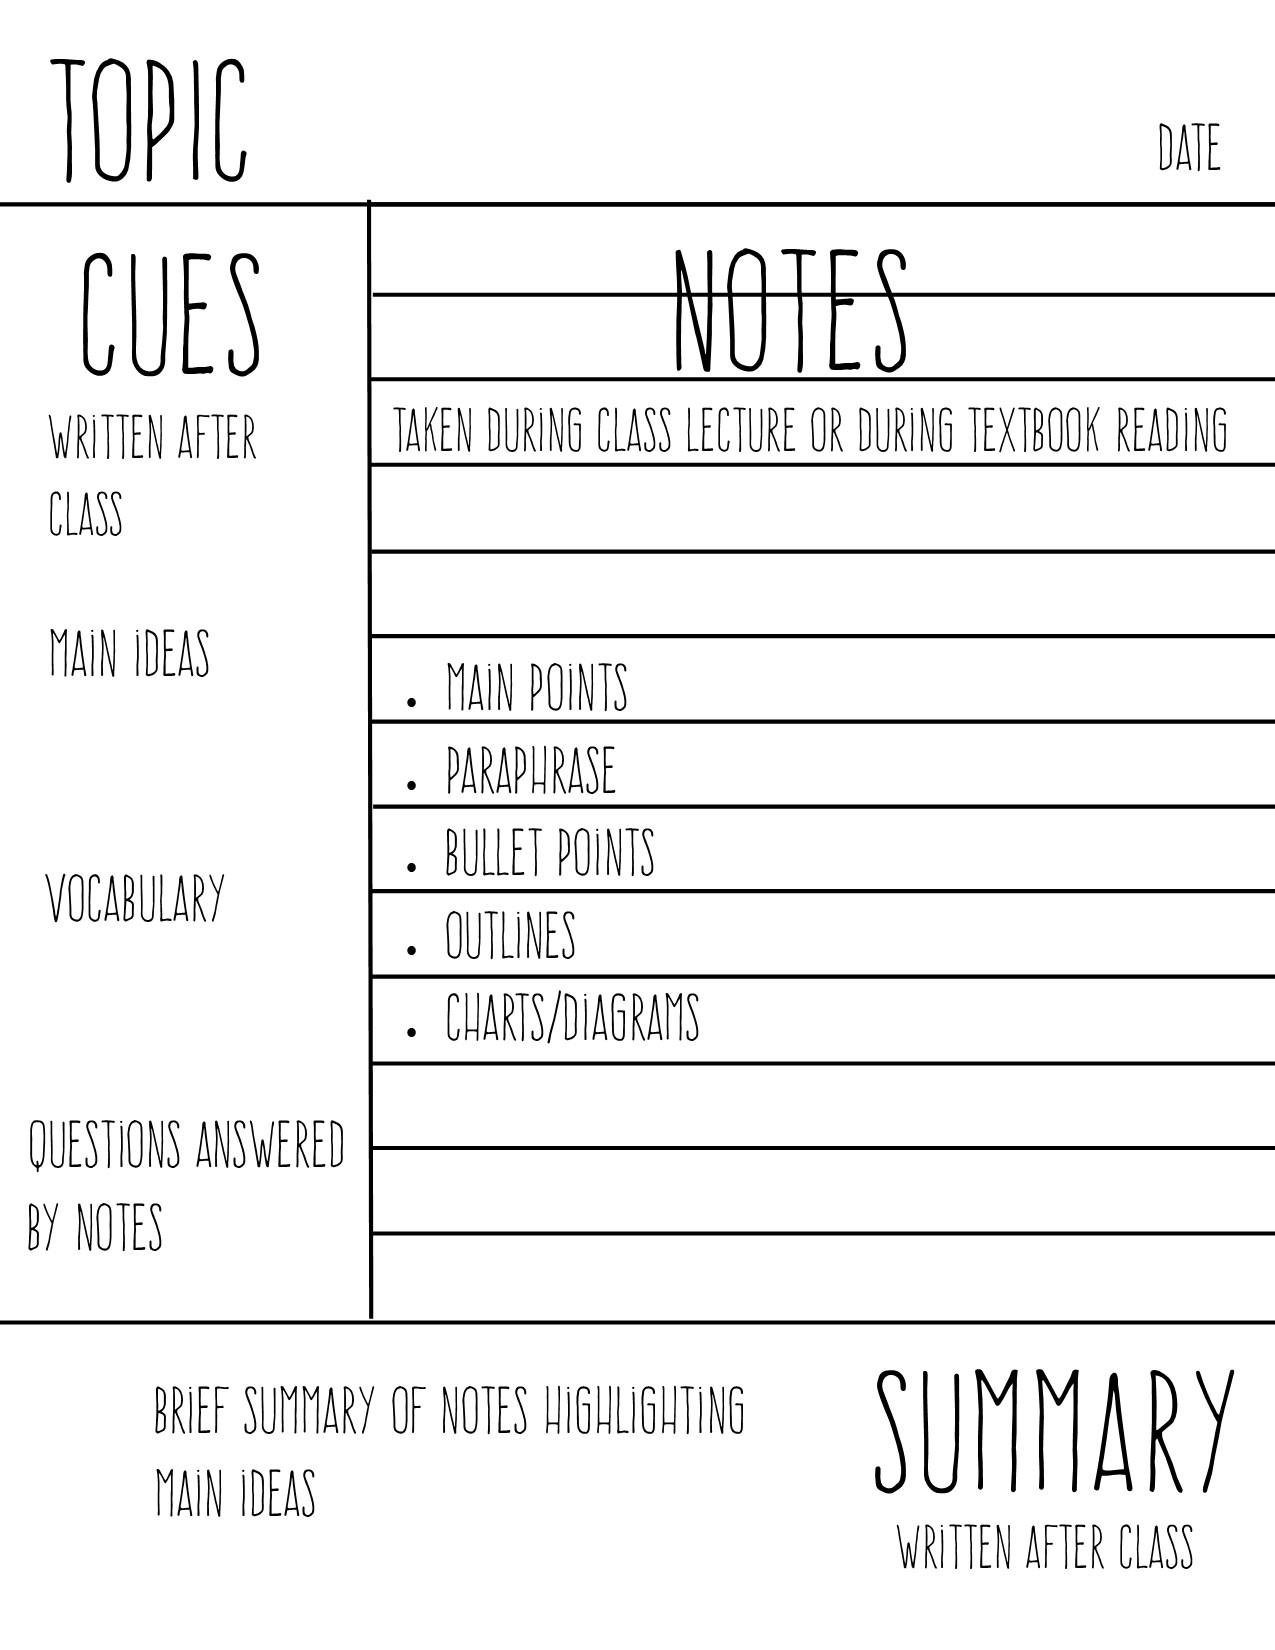 Note Taking Tips To Improve Your Study Habits The Sundial